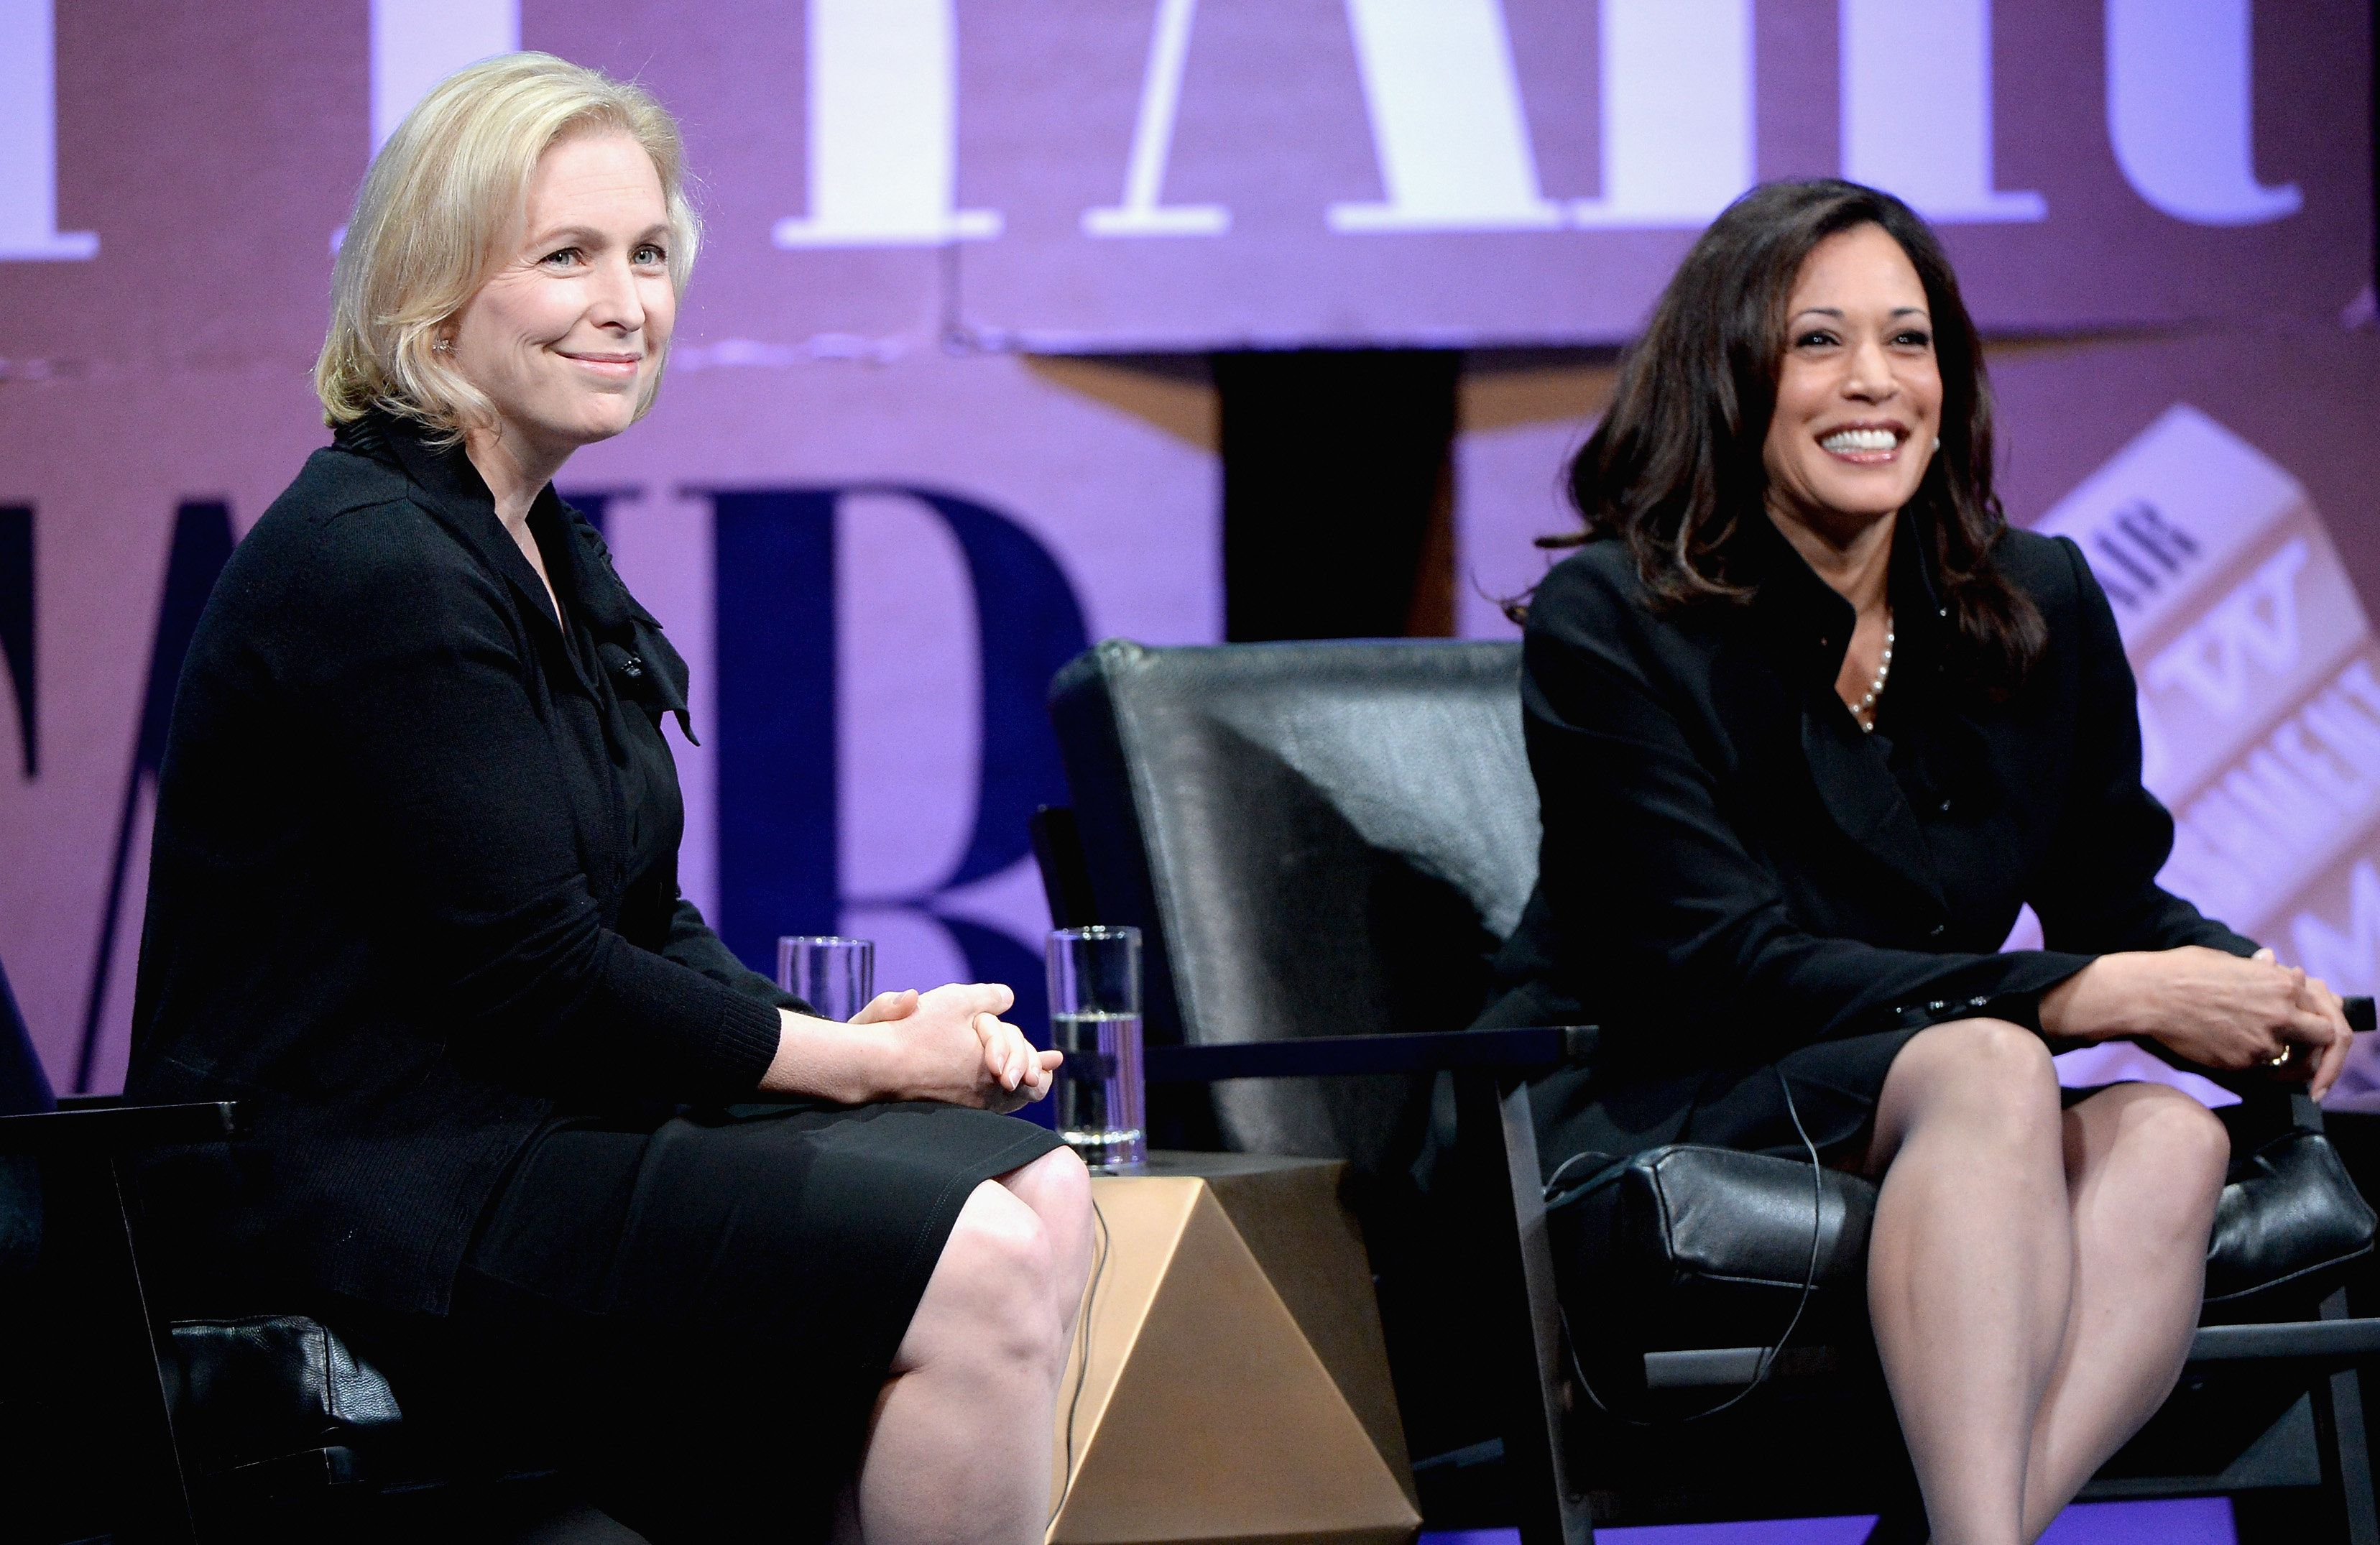 SAN FRANCISCO, CA - OCTOBER 09:  US Senator of New York Kirsten Gillibrand and Attorney General of California Kamala D. Harris speak onstage during 'Disrupting Politics' at the Vanity Fair New Establishment Summit at Yerba Buena Center for the Arts on October 9, 2014 in San Francisco, California.  (Photo by Michael Kovac/Getty Images for Vanity Fair)